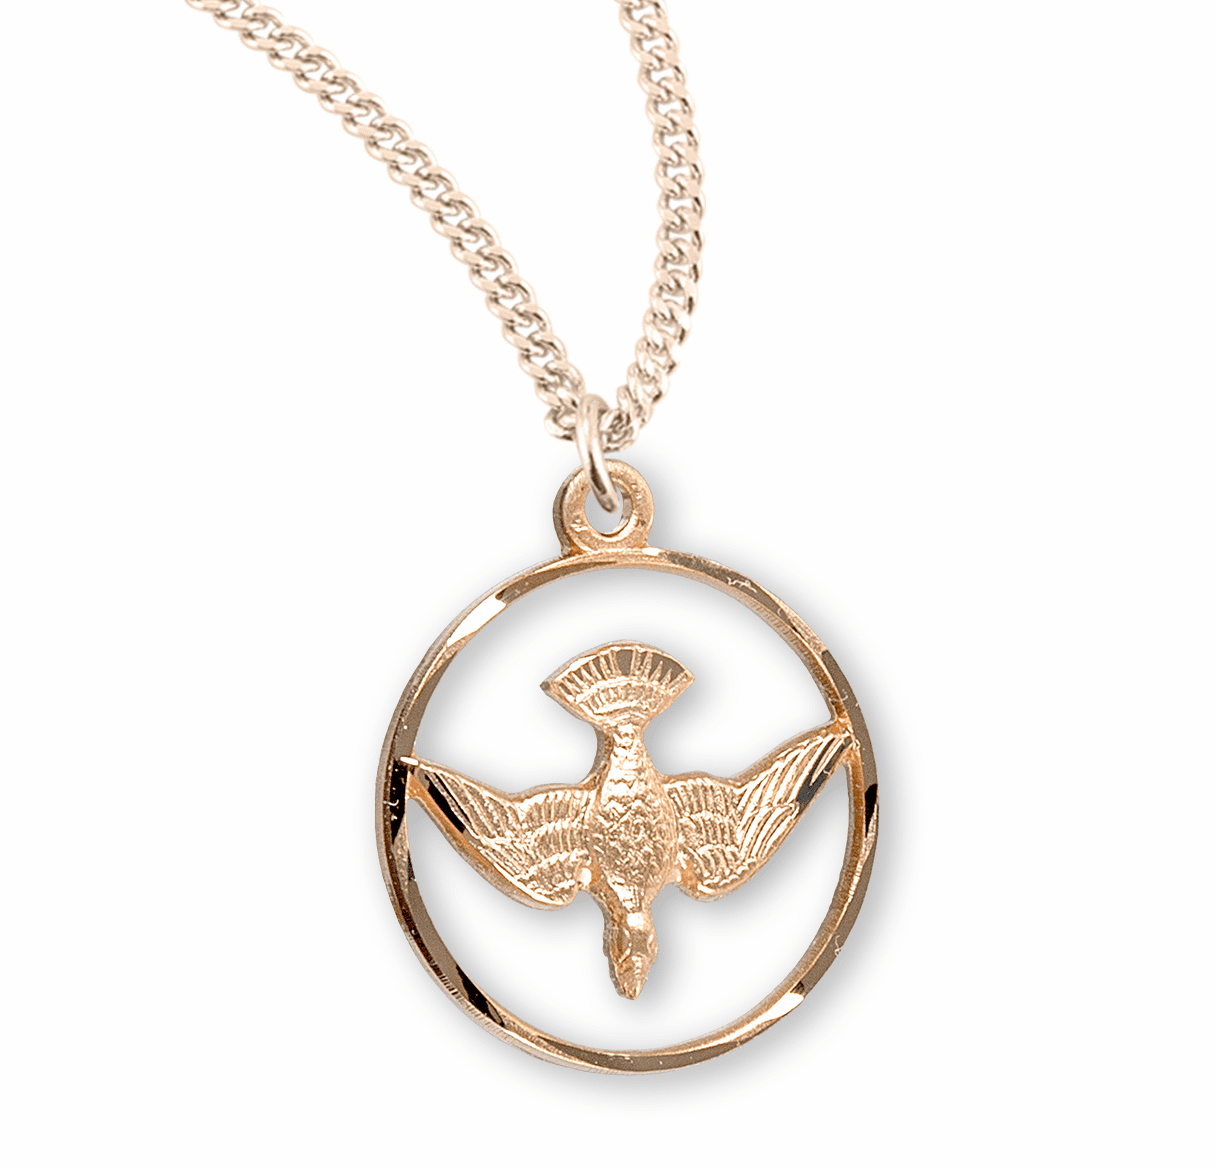 HMH Religious Gold Open Circle with Dove Medal Necklace